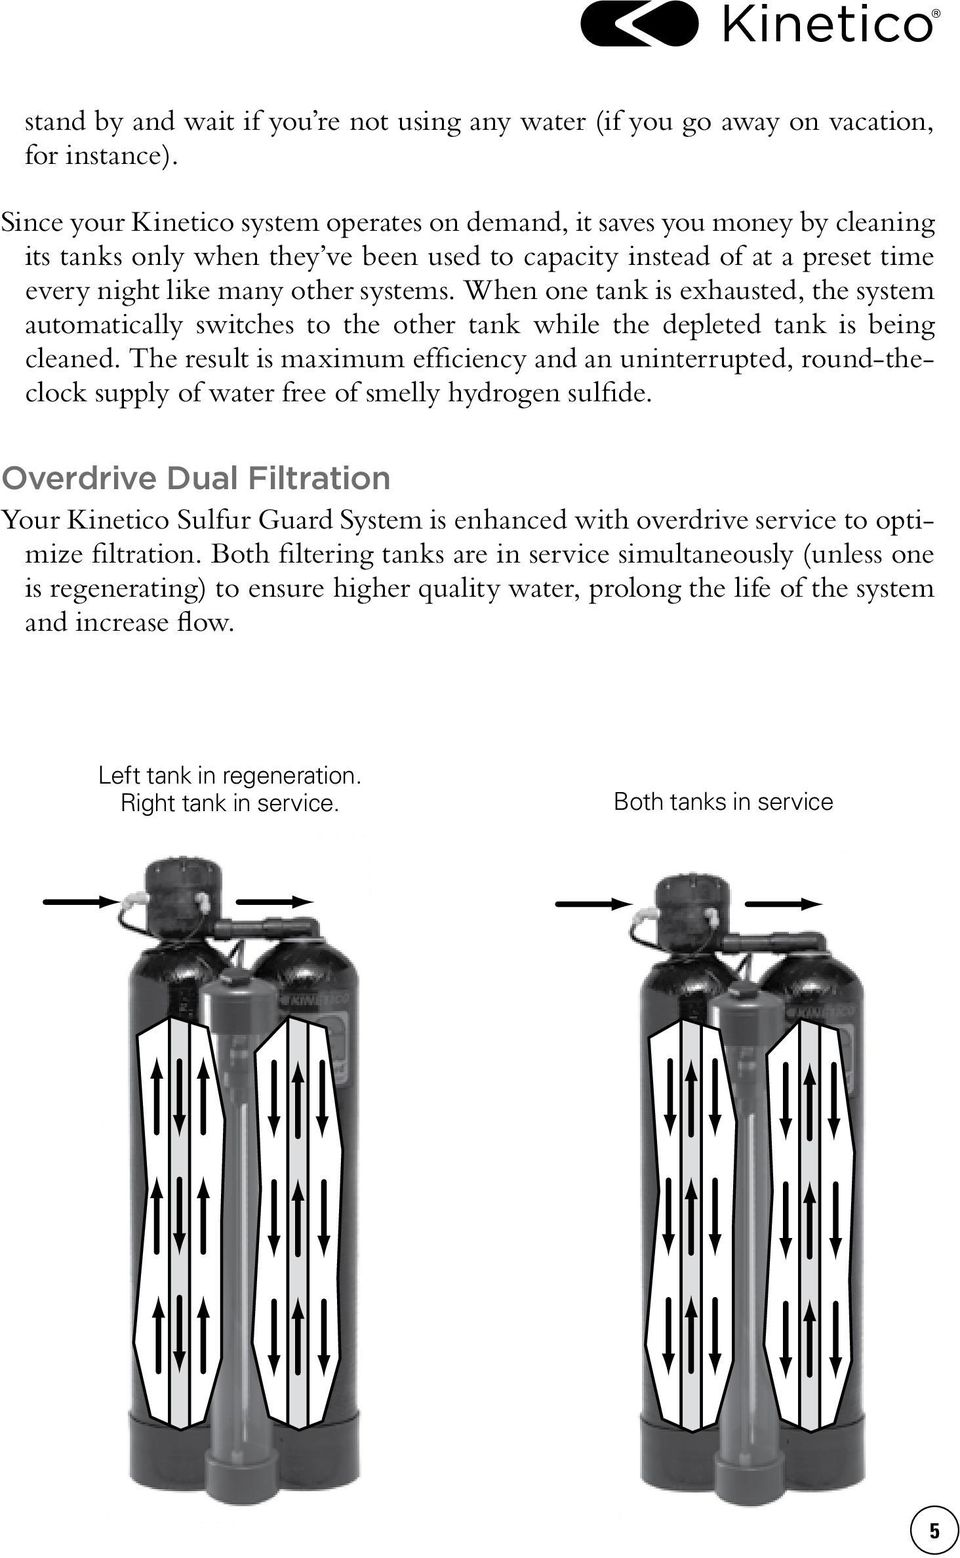 When one tank is exhausted, the system automatically switches to the other tank while the depleted tank is being cleaned.